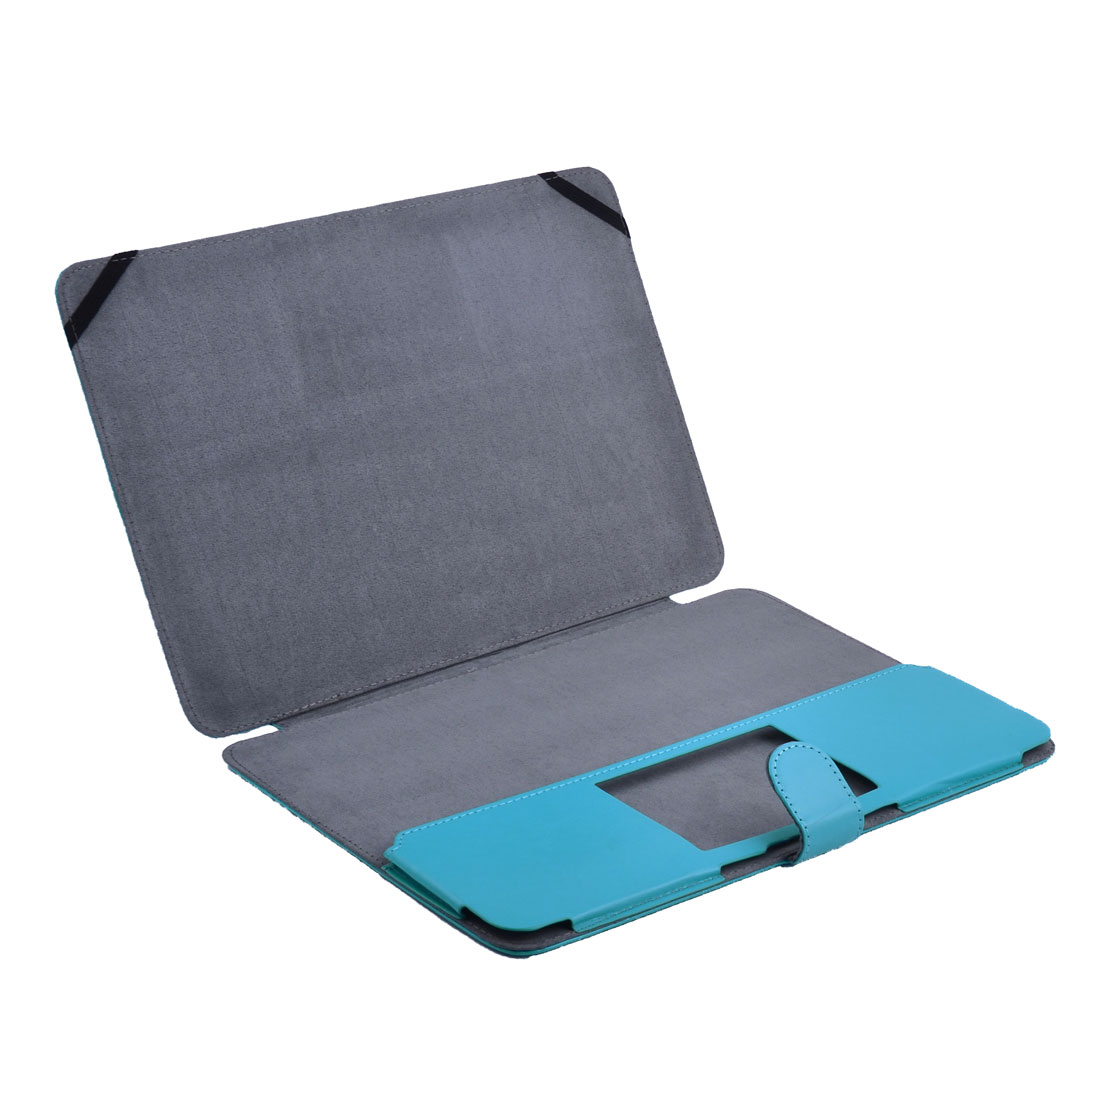 Laptop PU Leather Shell Case Sleeve Blue for MacBook Air 13.3 Inch